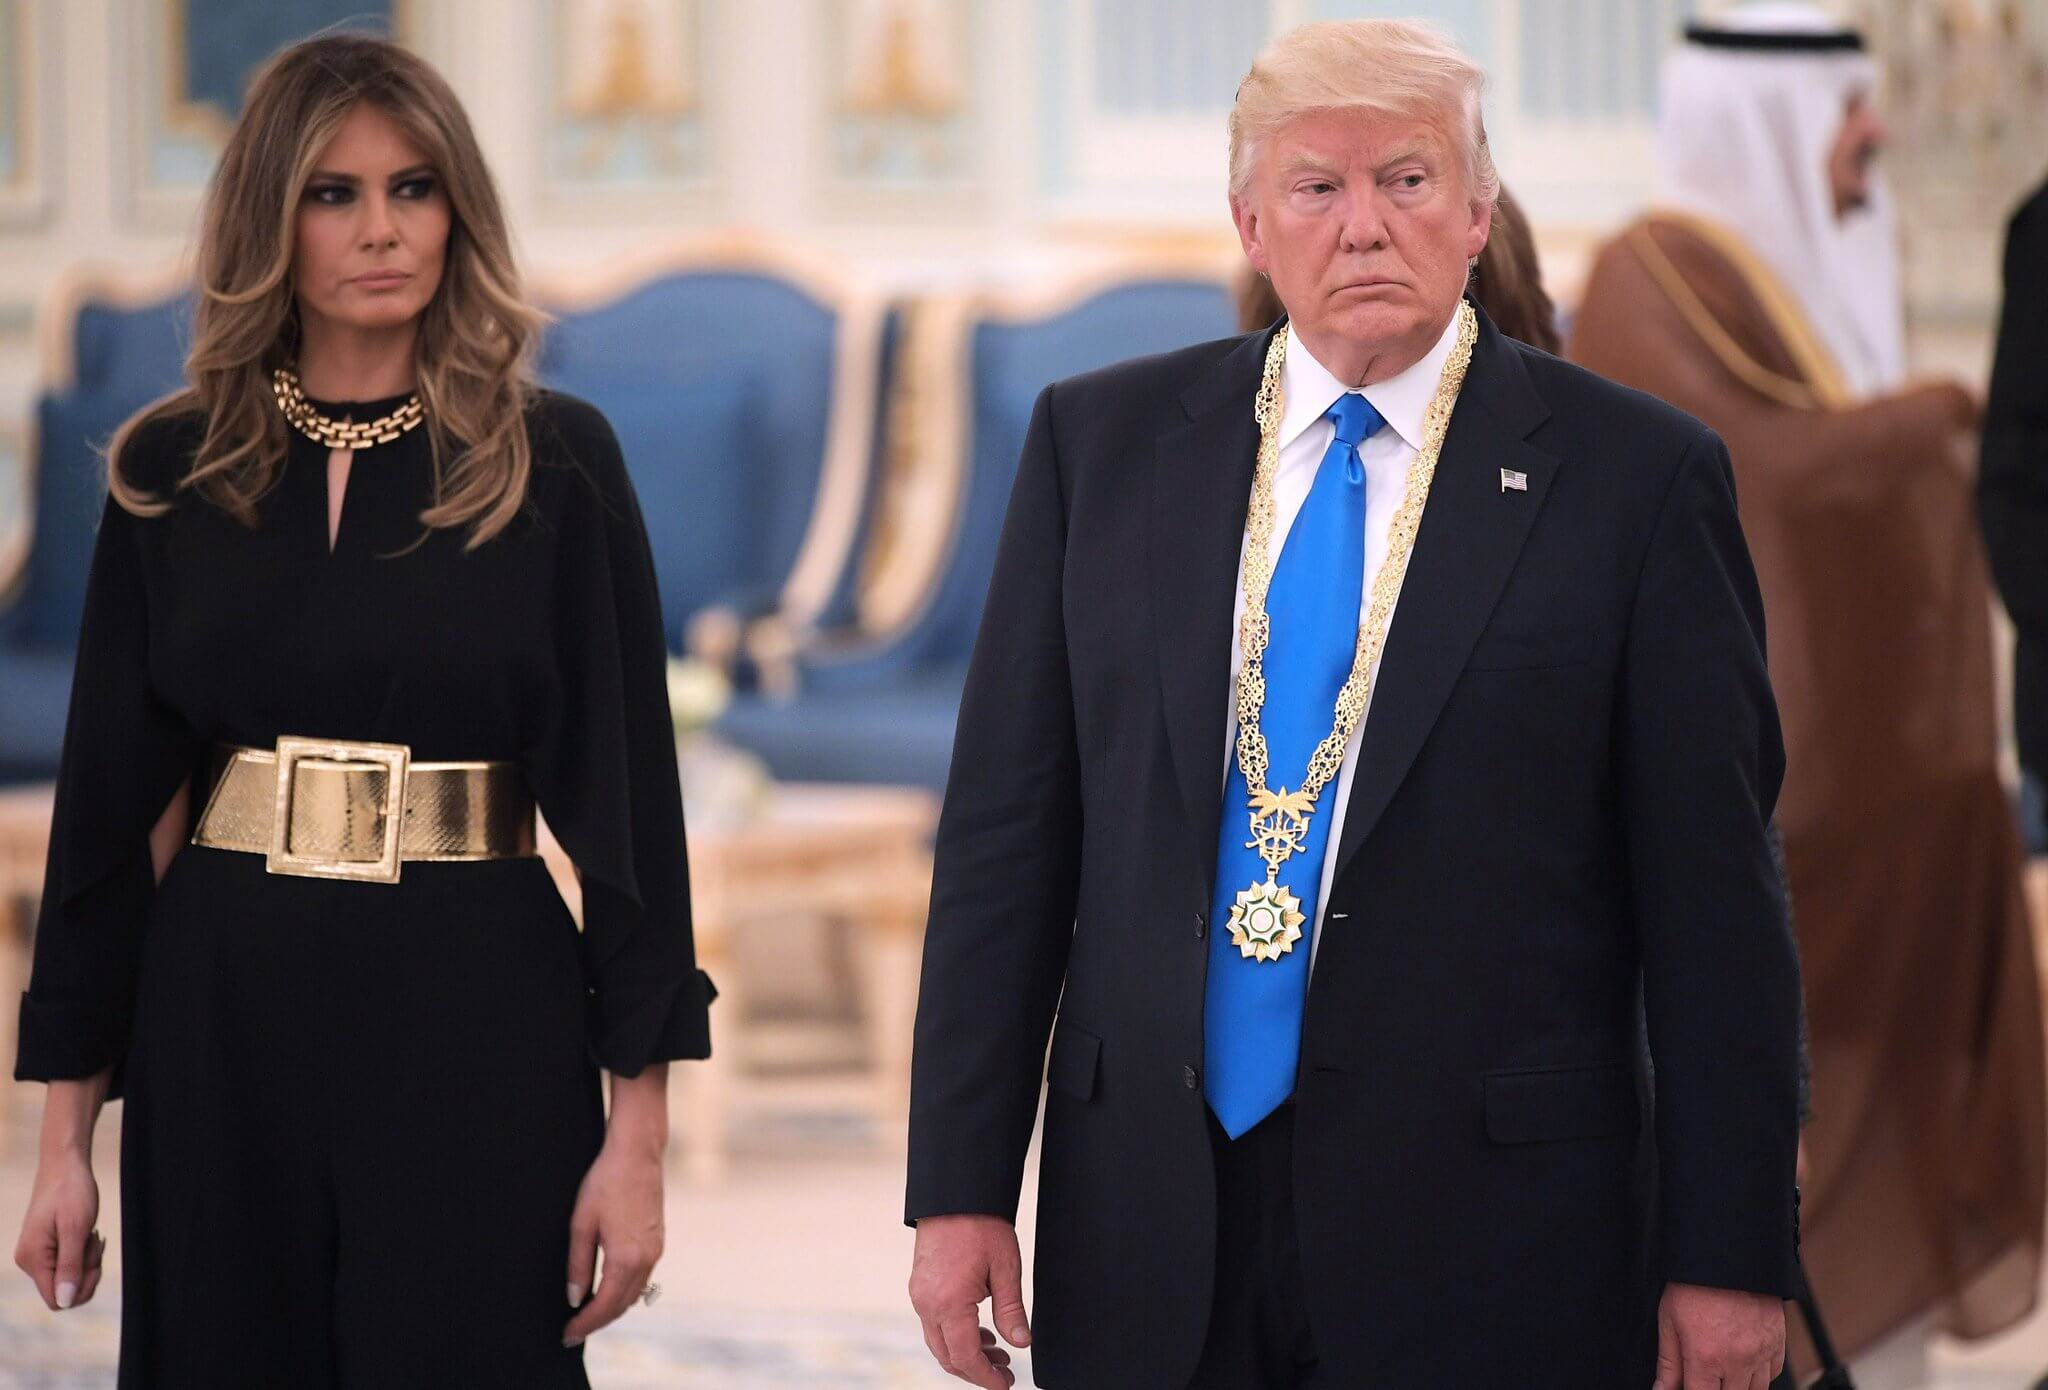 Is Trump Tearing your Marriage Apart?